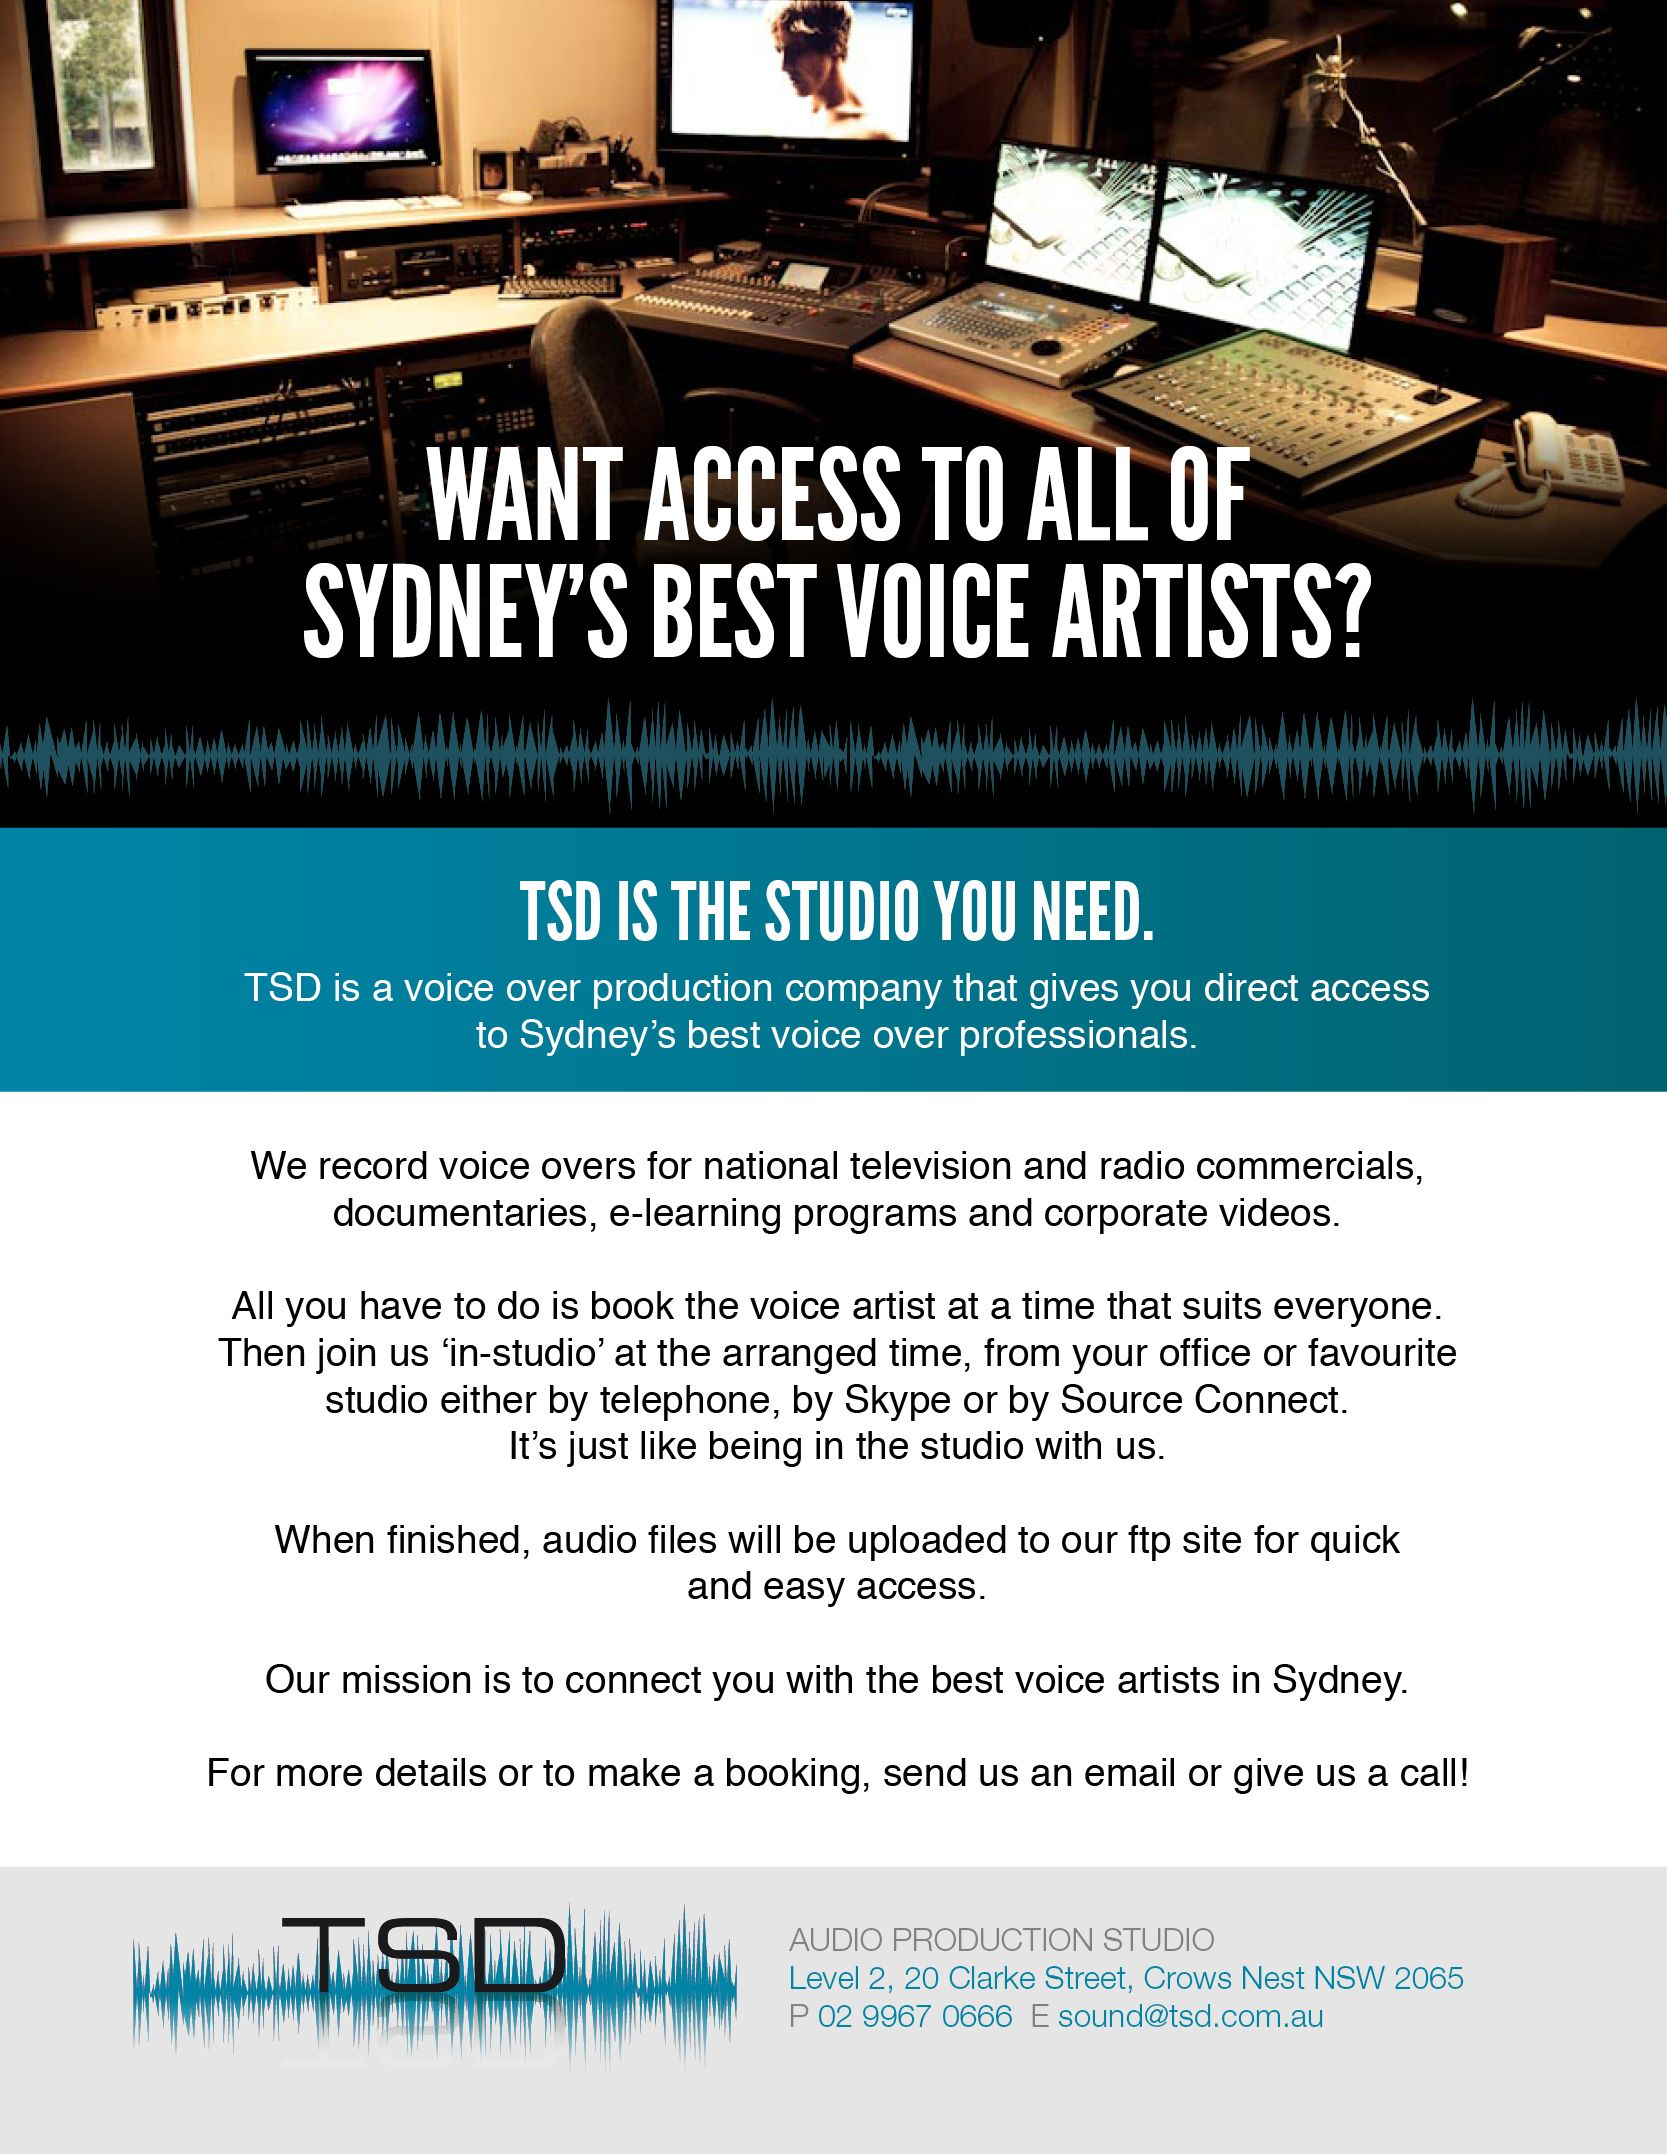 TSD Audio Production Studio. Giving you access to Sydney